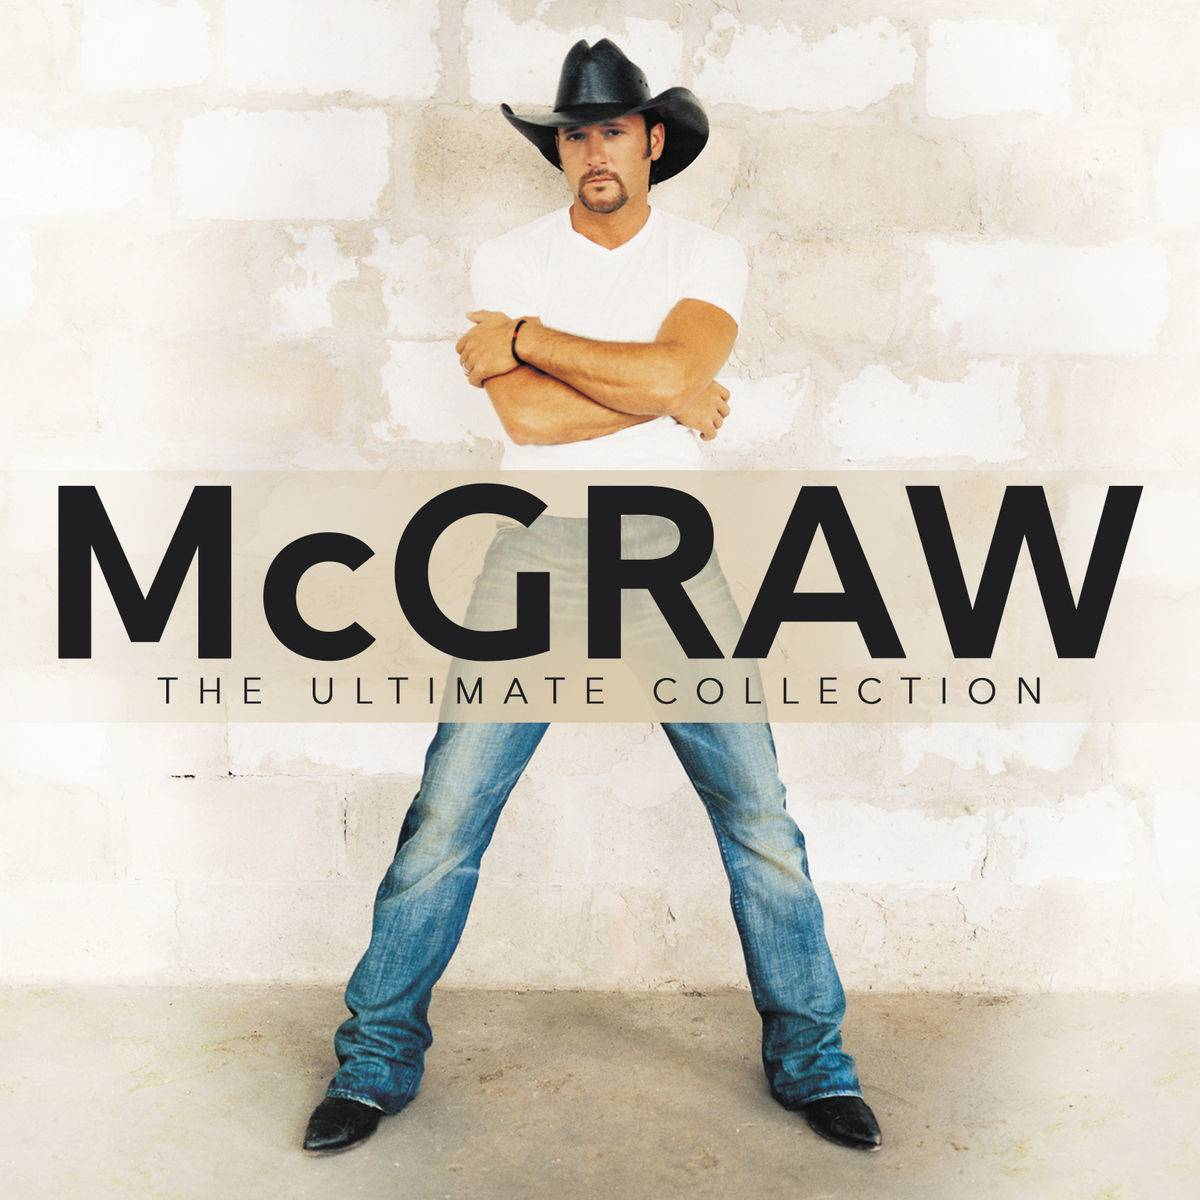 Tim McGraw - McGRAW (The Ultimate Collection) (2016)